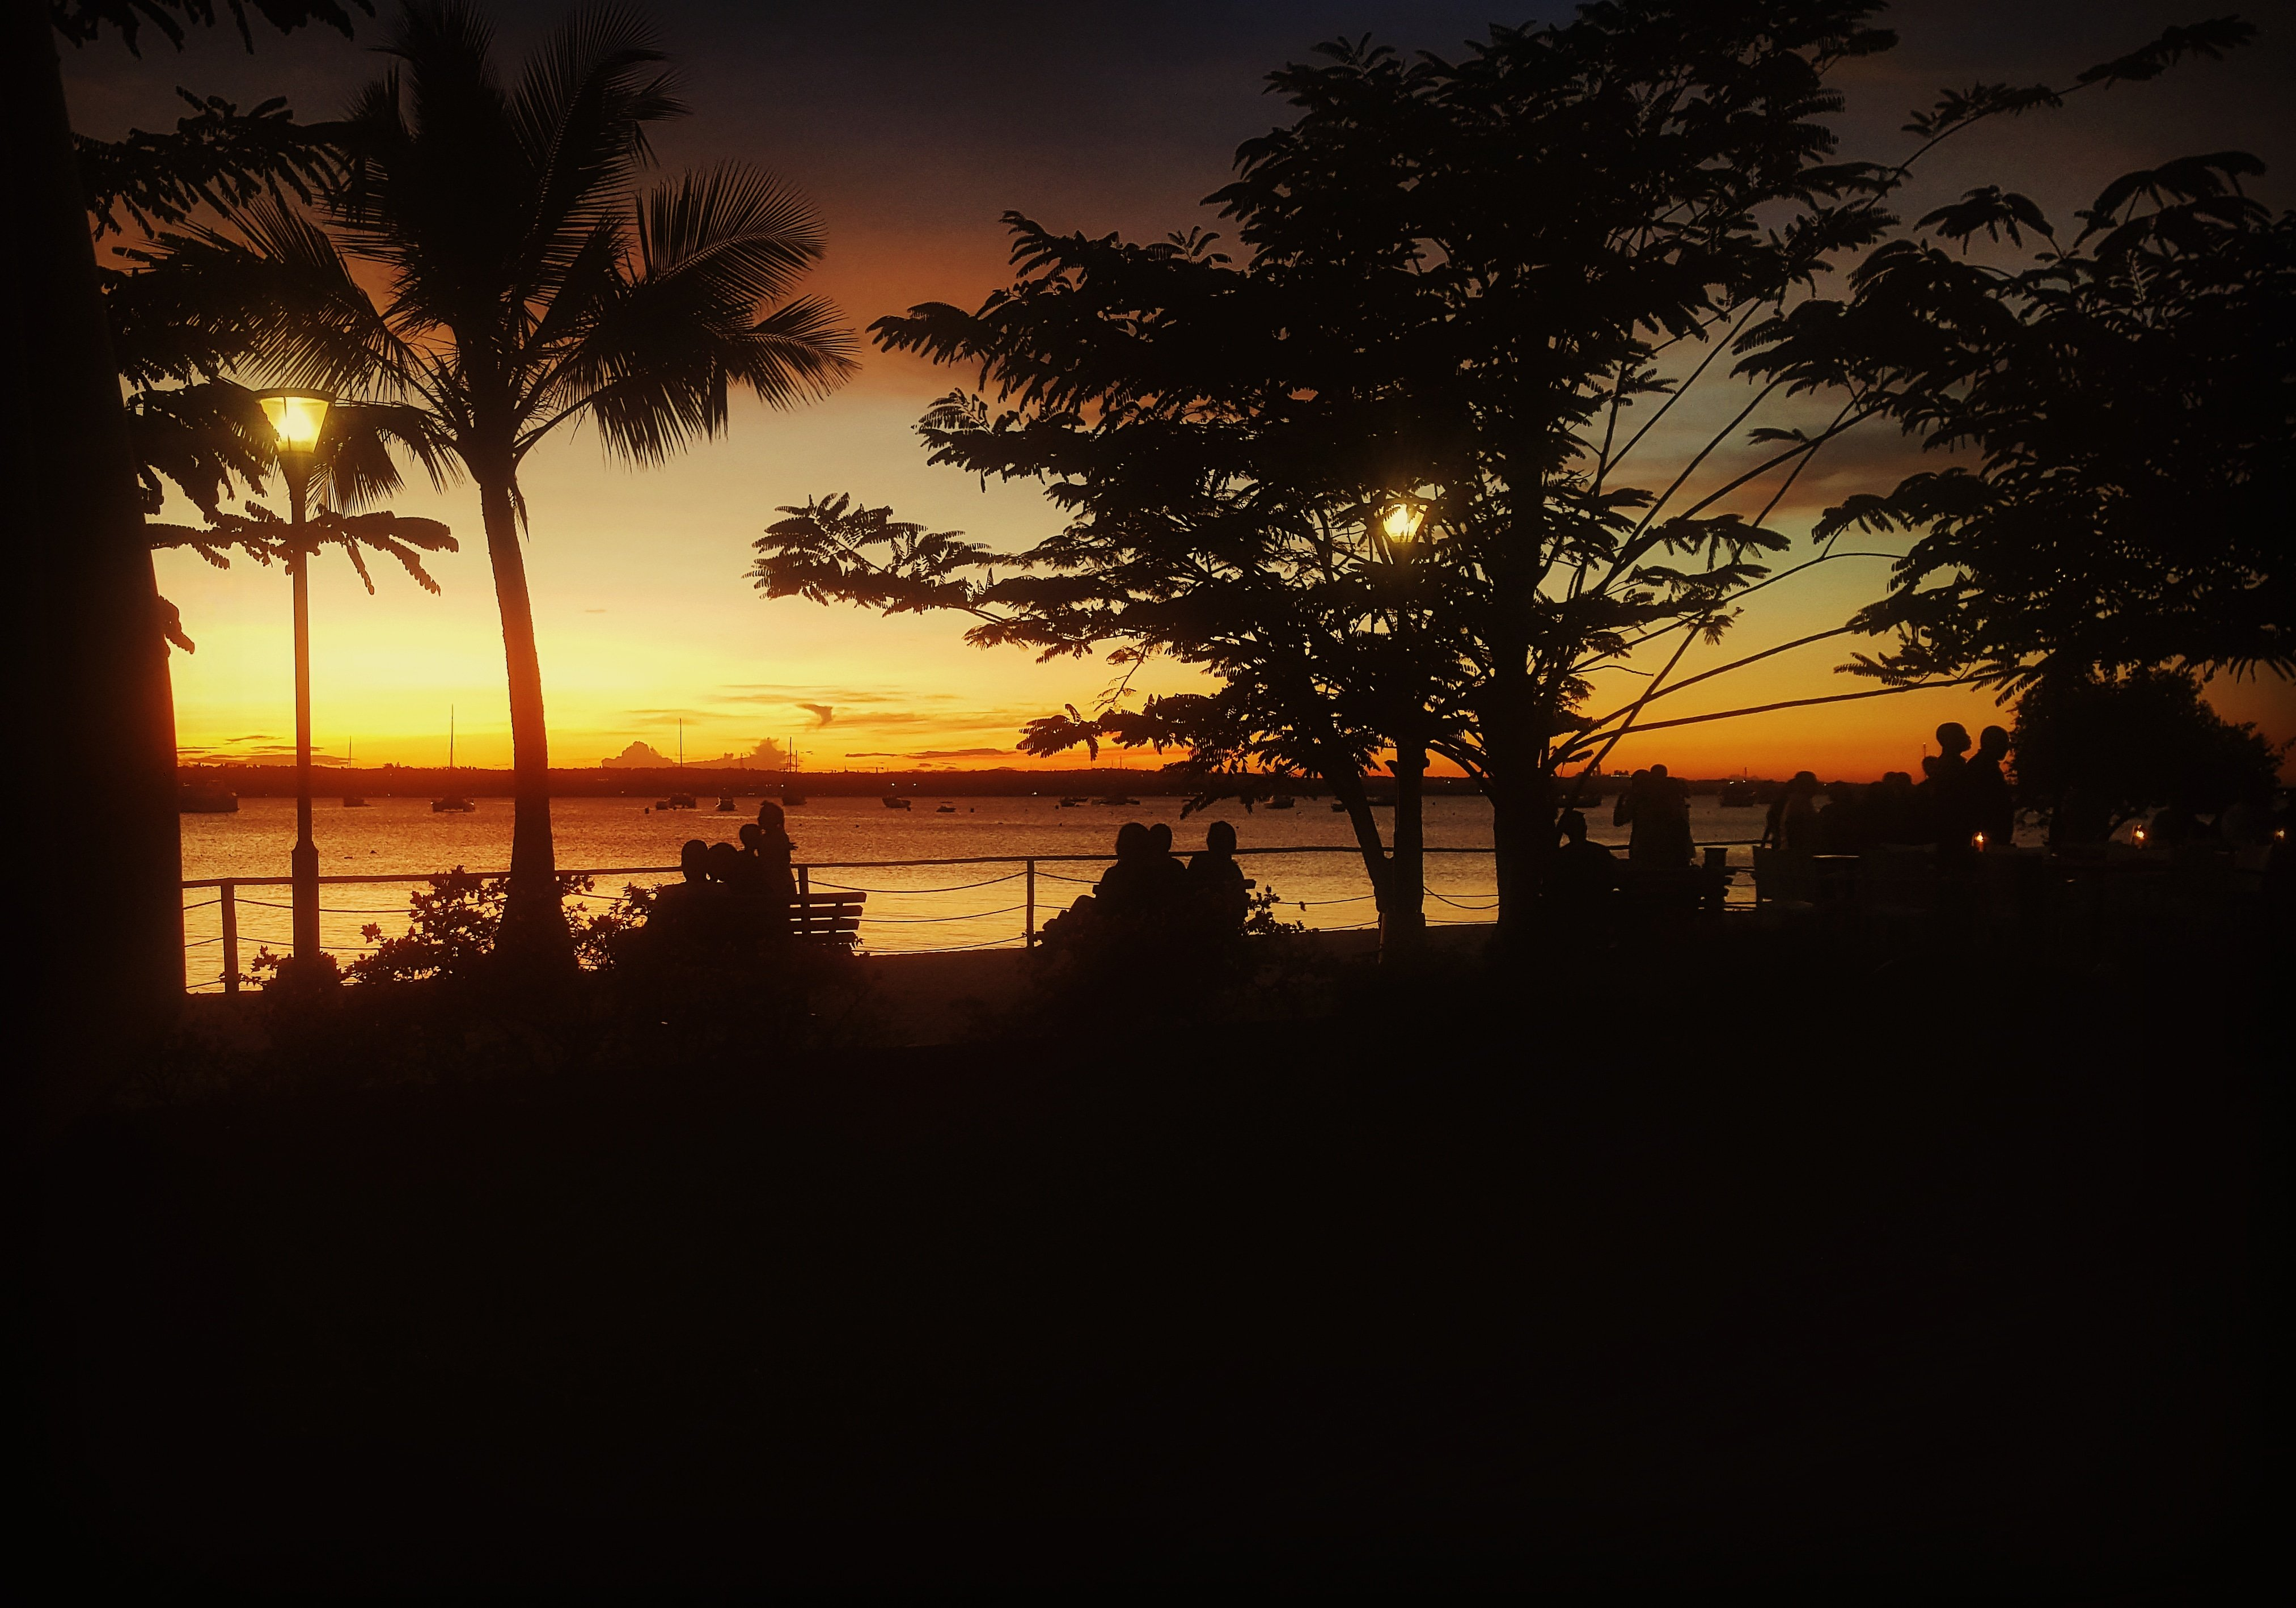 Nature views: Slipway Orange dusk over the Indian Ocean, Dar es Salaam, Tanzania